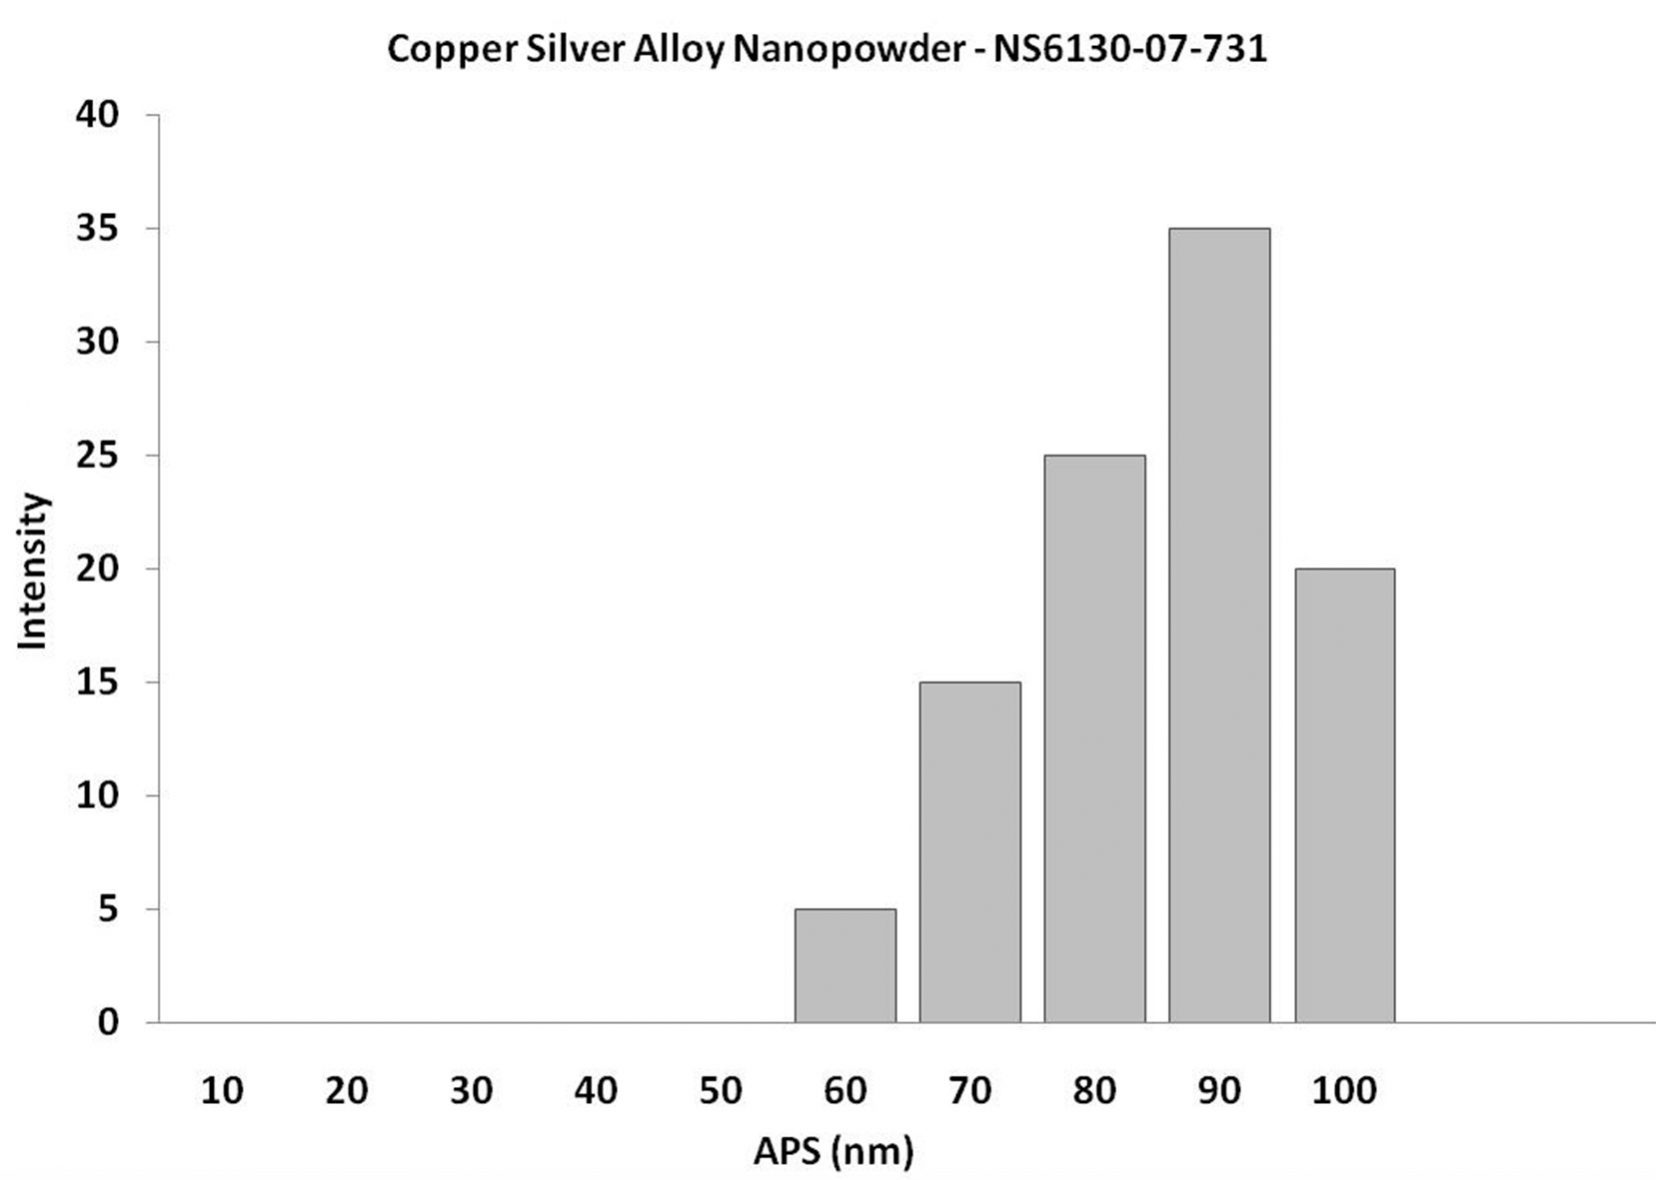 Particles Size Analysis - Copper Silver Alloy Nanoparticles